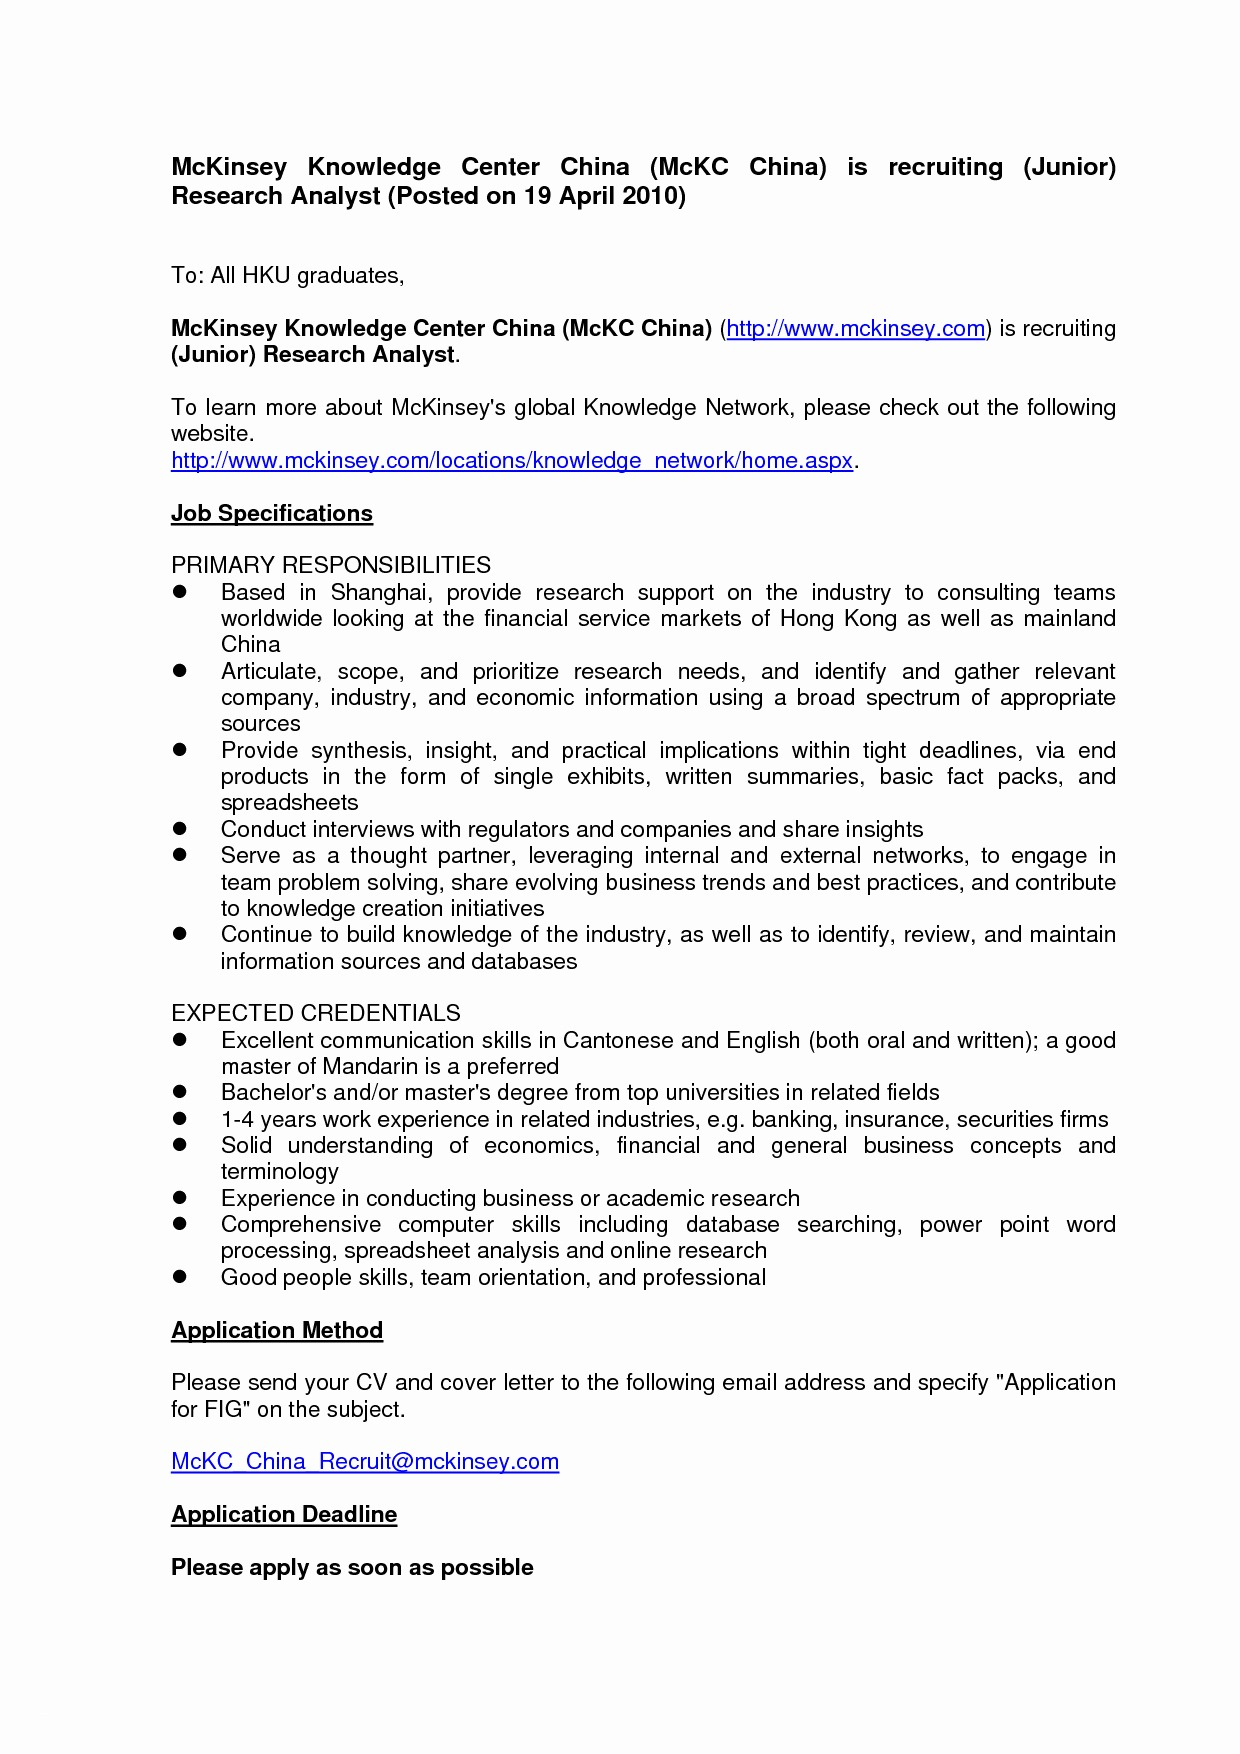 Resume and Cover Letter Template Microsoft Word - Resume Templates for Word New Resume Cover Letter Template Word